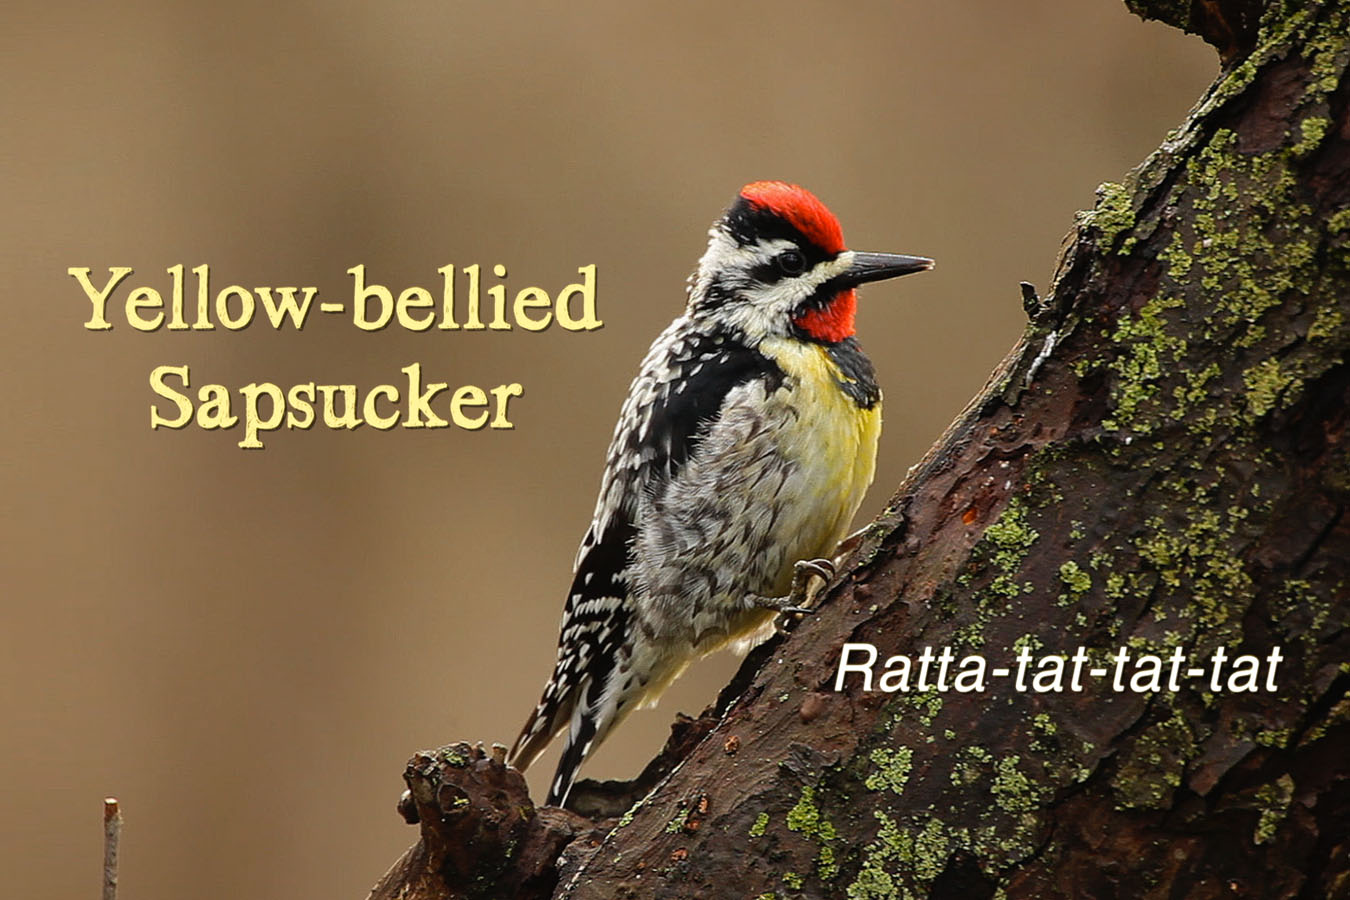 Yellow-bellied Sapsucker - featured image © Lang Elliott